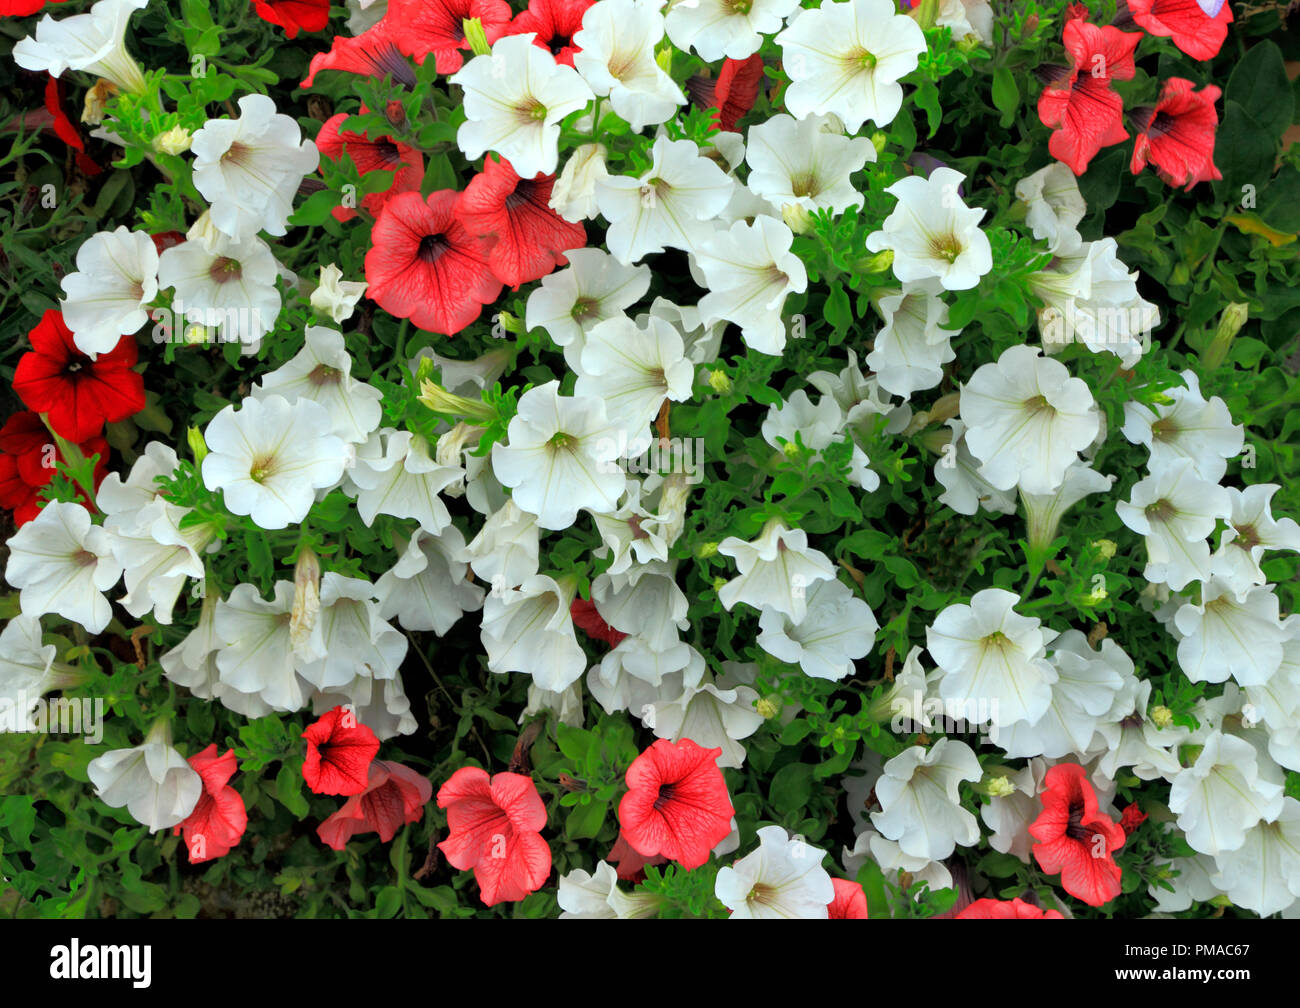 Petunia petunias red white trailing wall annuals flowers stock petunia petunias red white trailing wall annuals flowers mightylinksfo